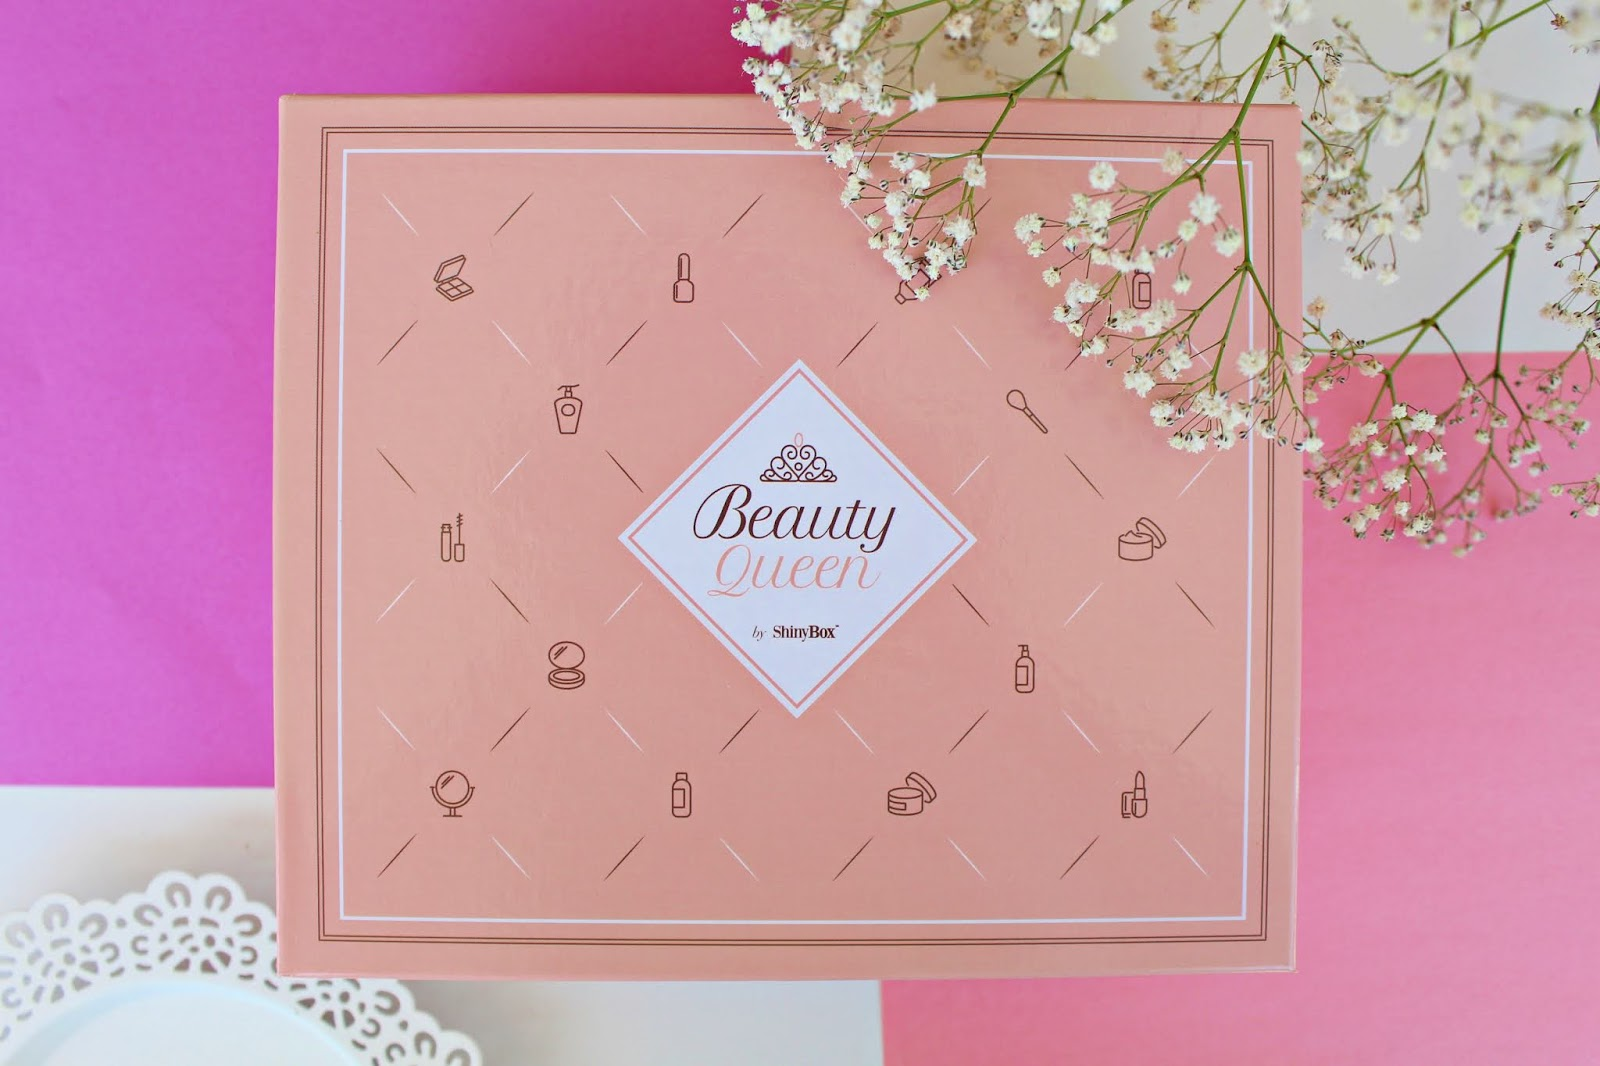 SHINYBOX Step into THE BEAUTY - MAJ 2019 - unboxing